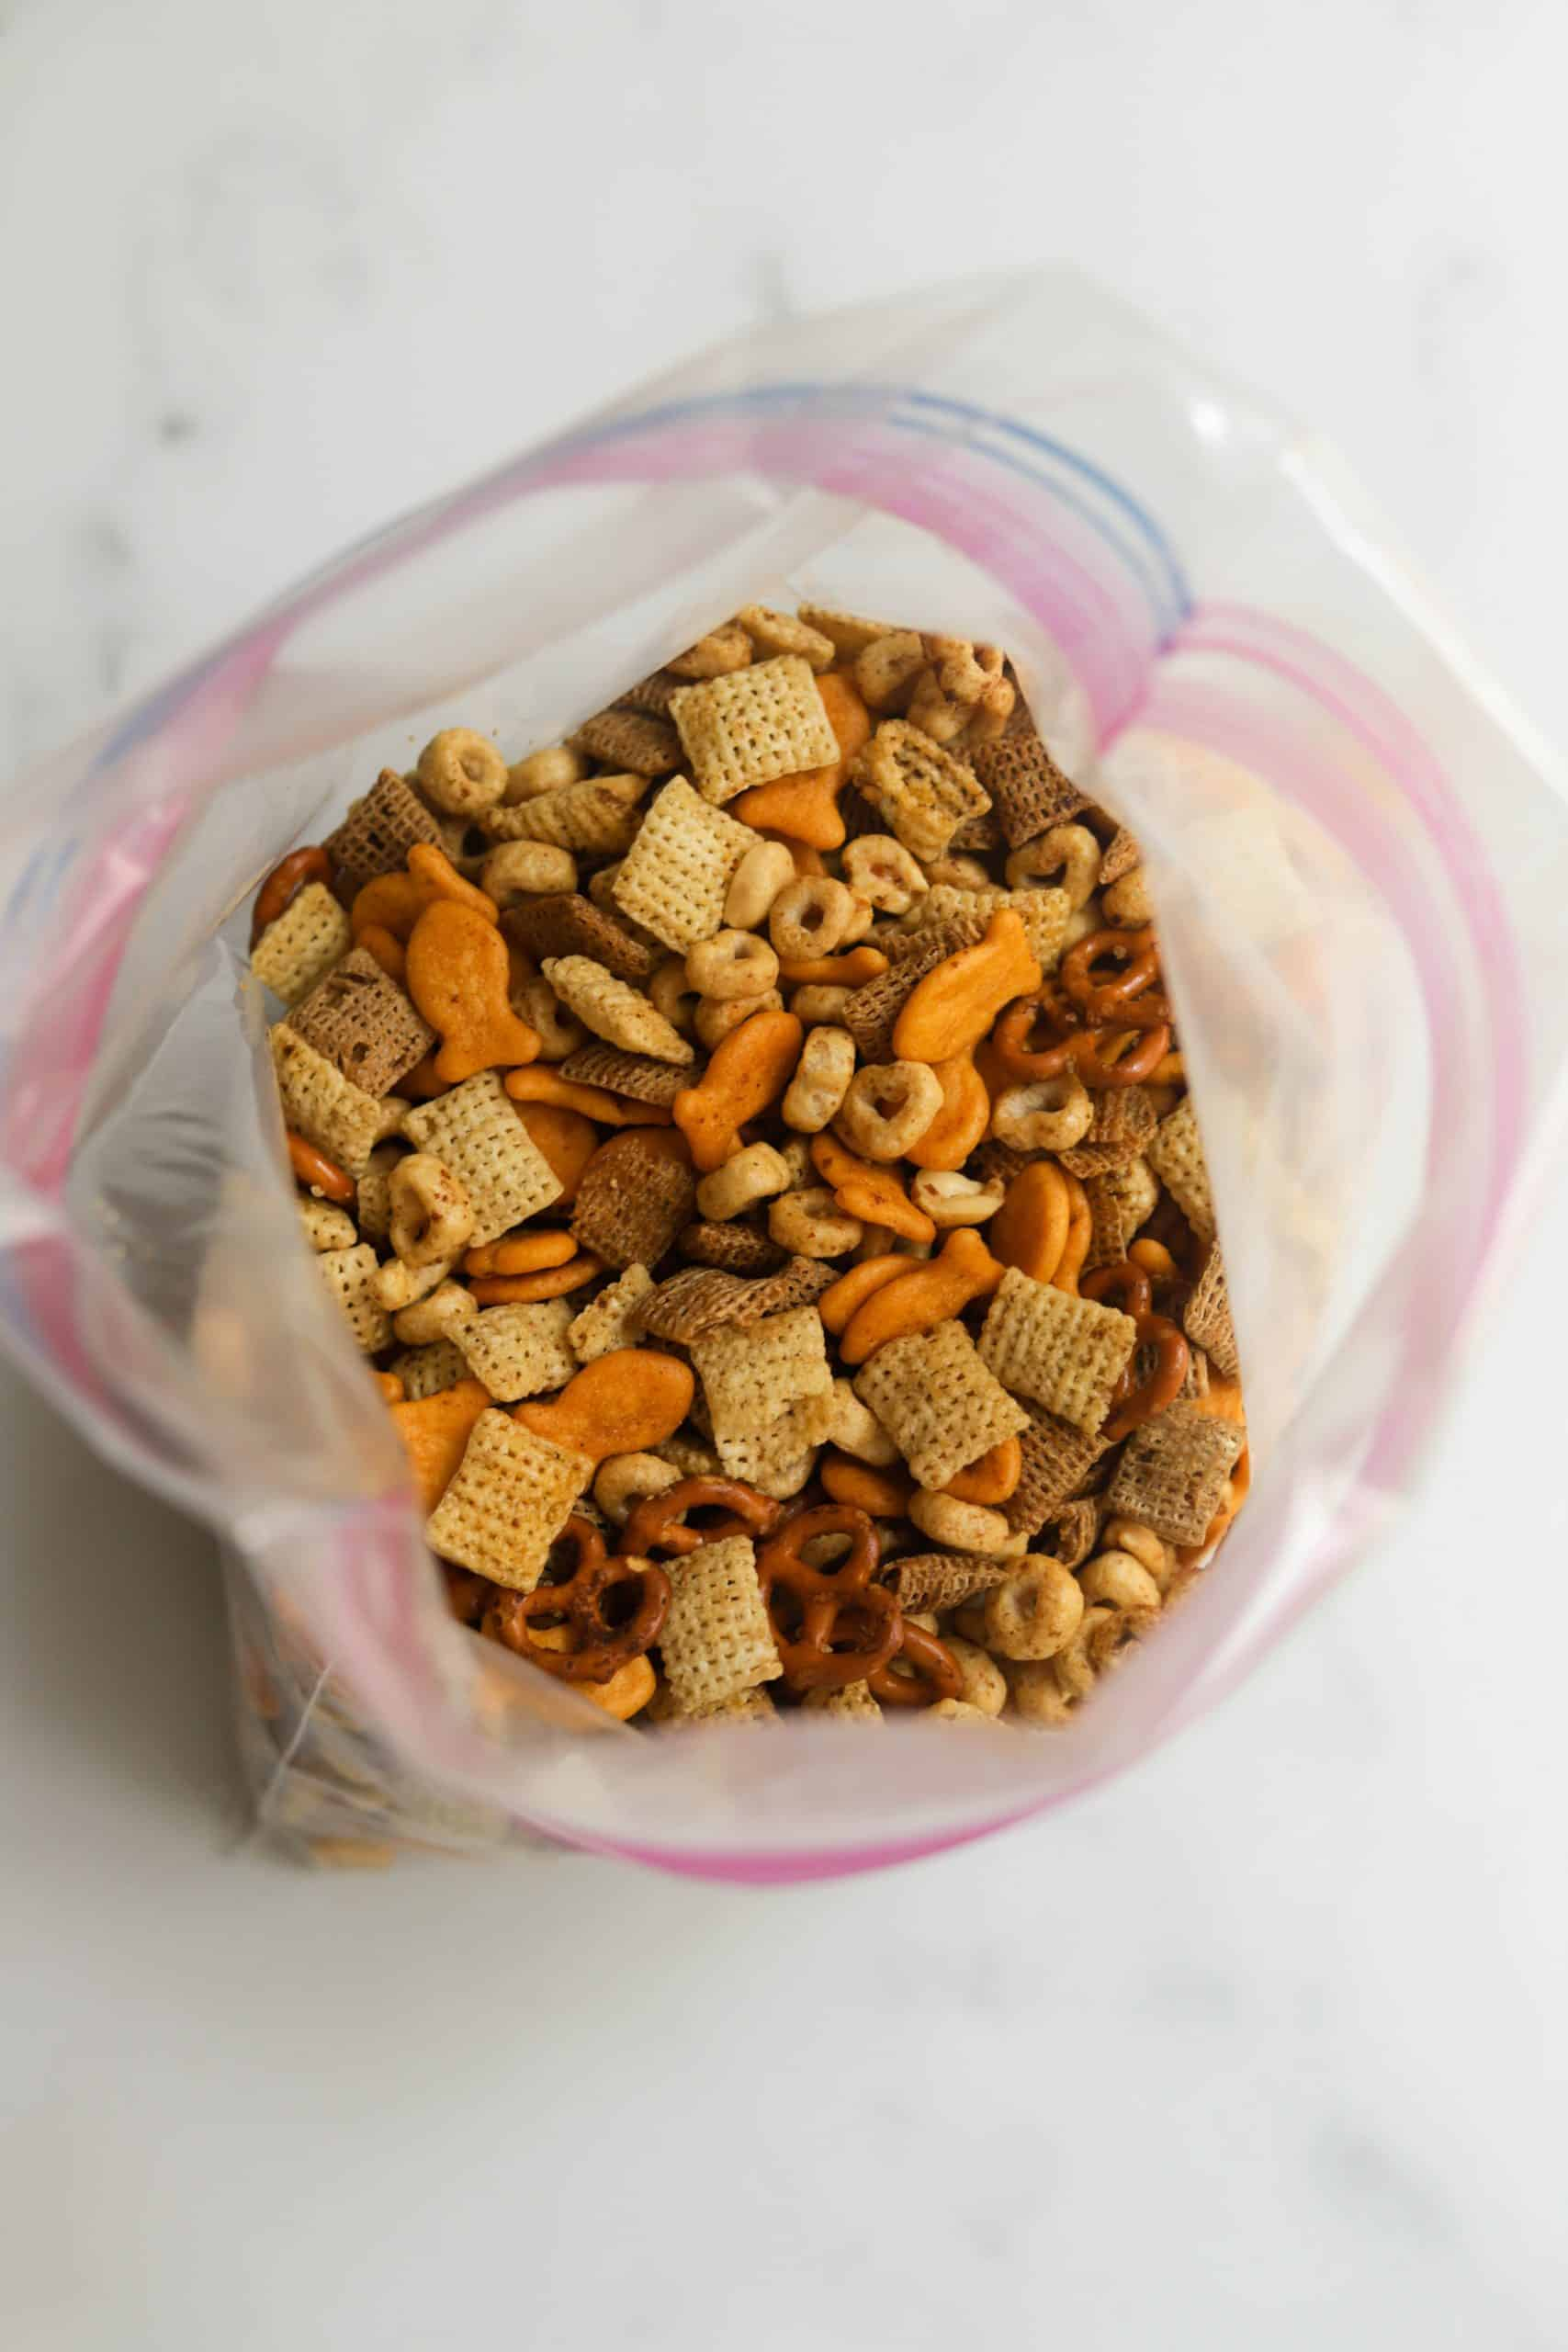 A Ziploc bag filled with healthy chex mix.